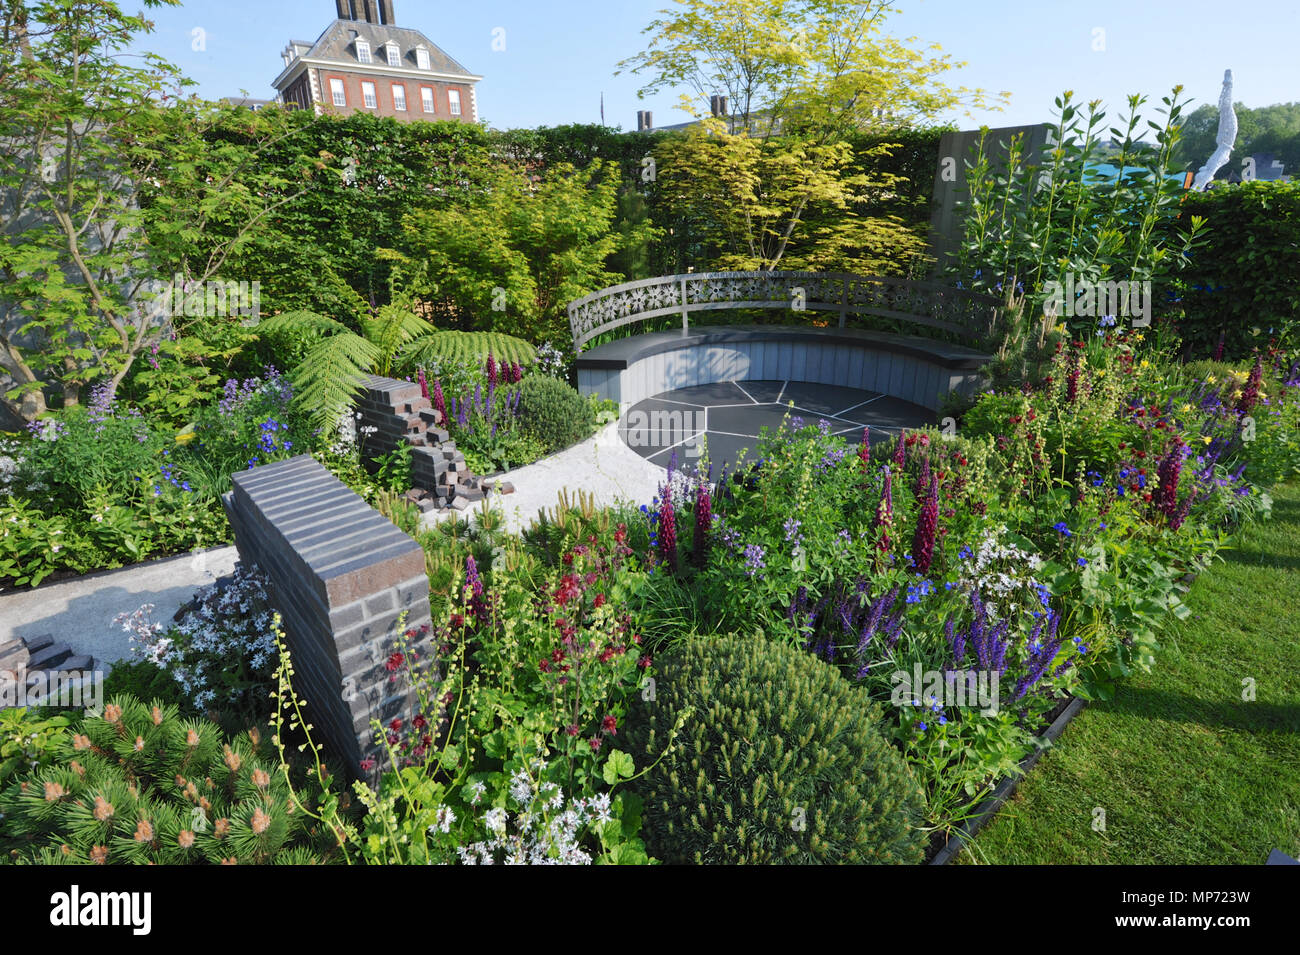 London, UK. 21st May 2018. The CHERUB HIV Garden: (A Life Without Walls),  (designed by Naomi Ferrett-Cohen), one of the beautiful and elegant show gardens on display at the 2018 RHS Chelsea Flower Show which opened today in the 11-acre grounds of the Royal Hospital Chelsea, London, United Kingdom.   Credit: Michael Preston/Alamy Live News - Stock Image